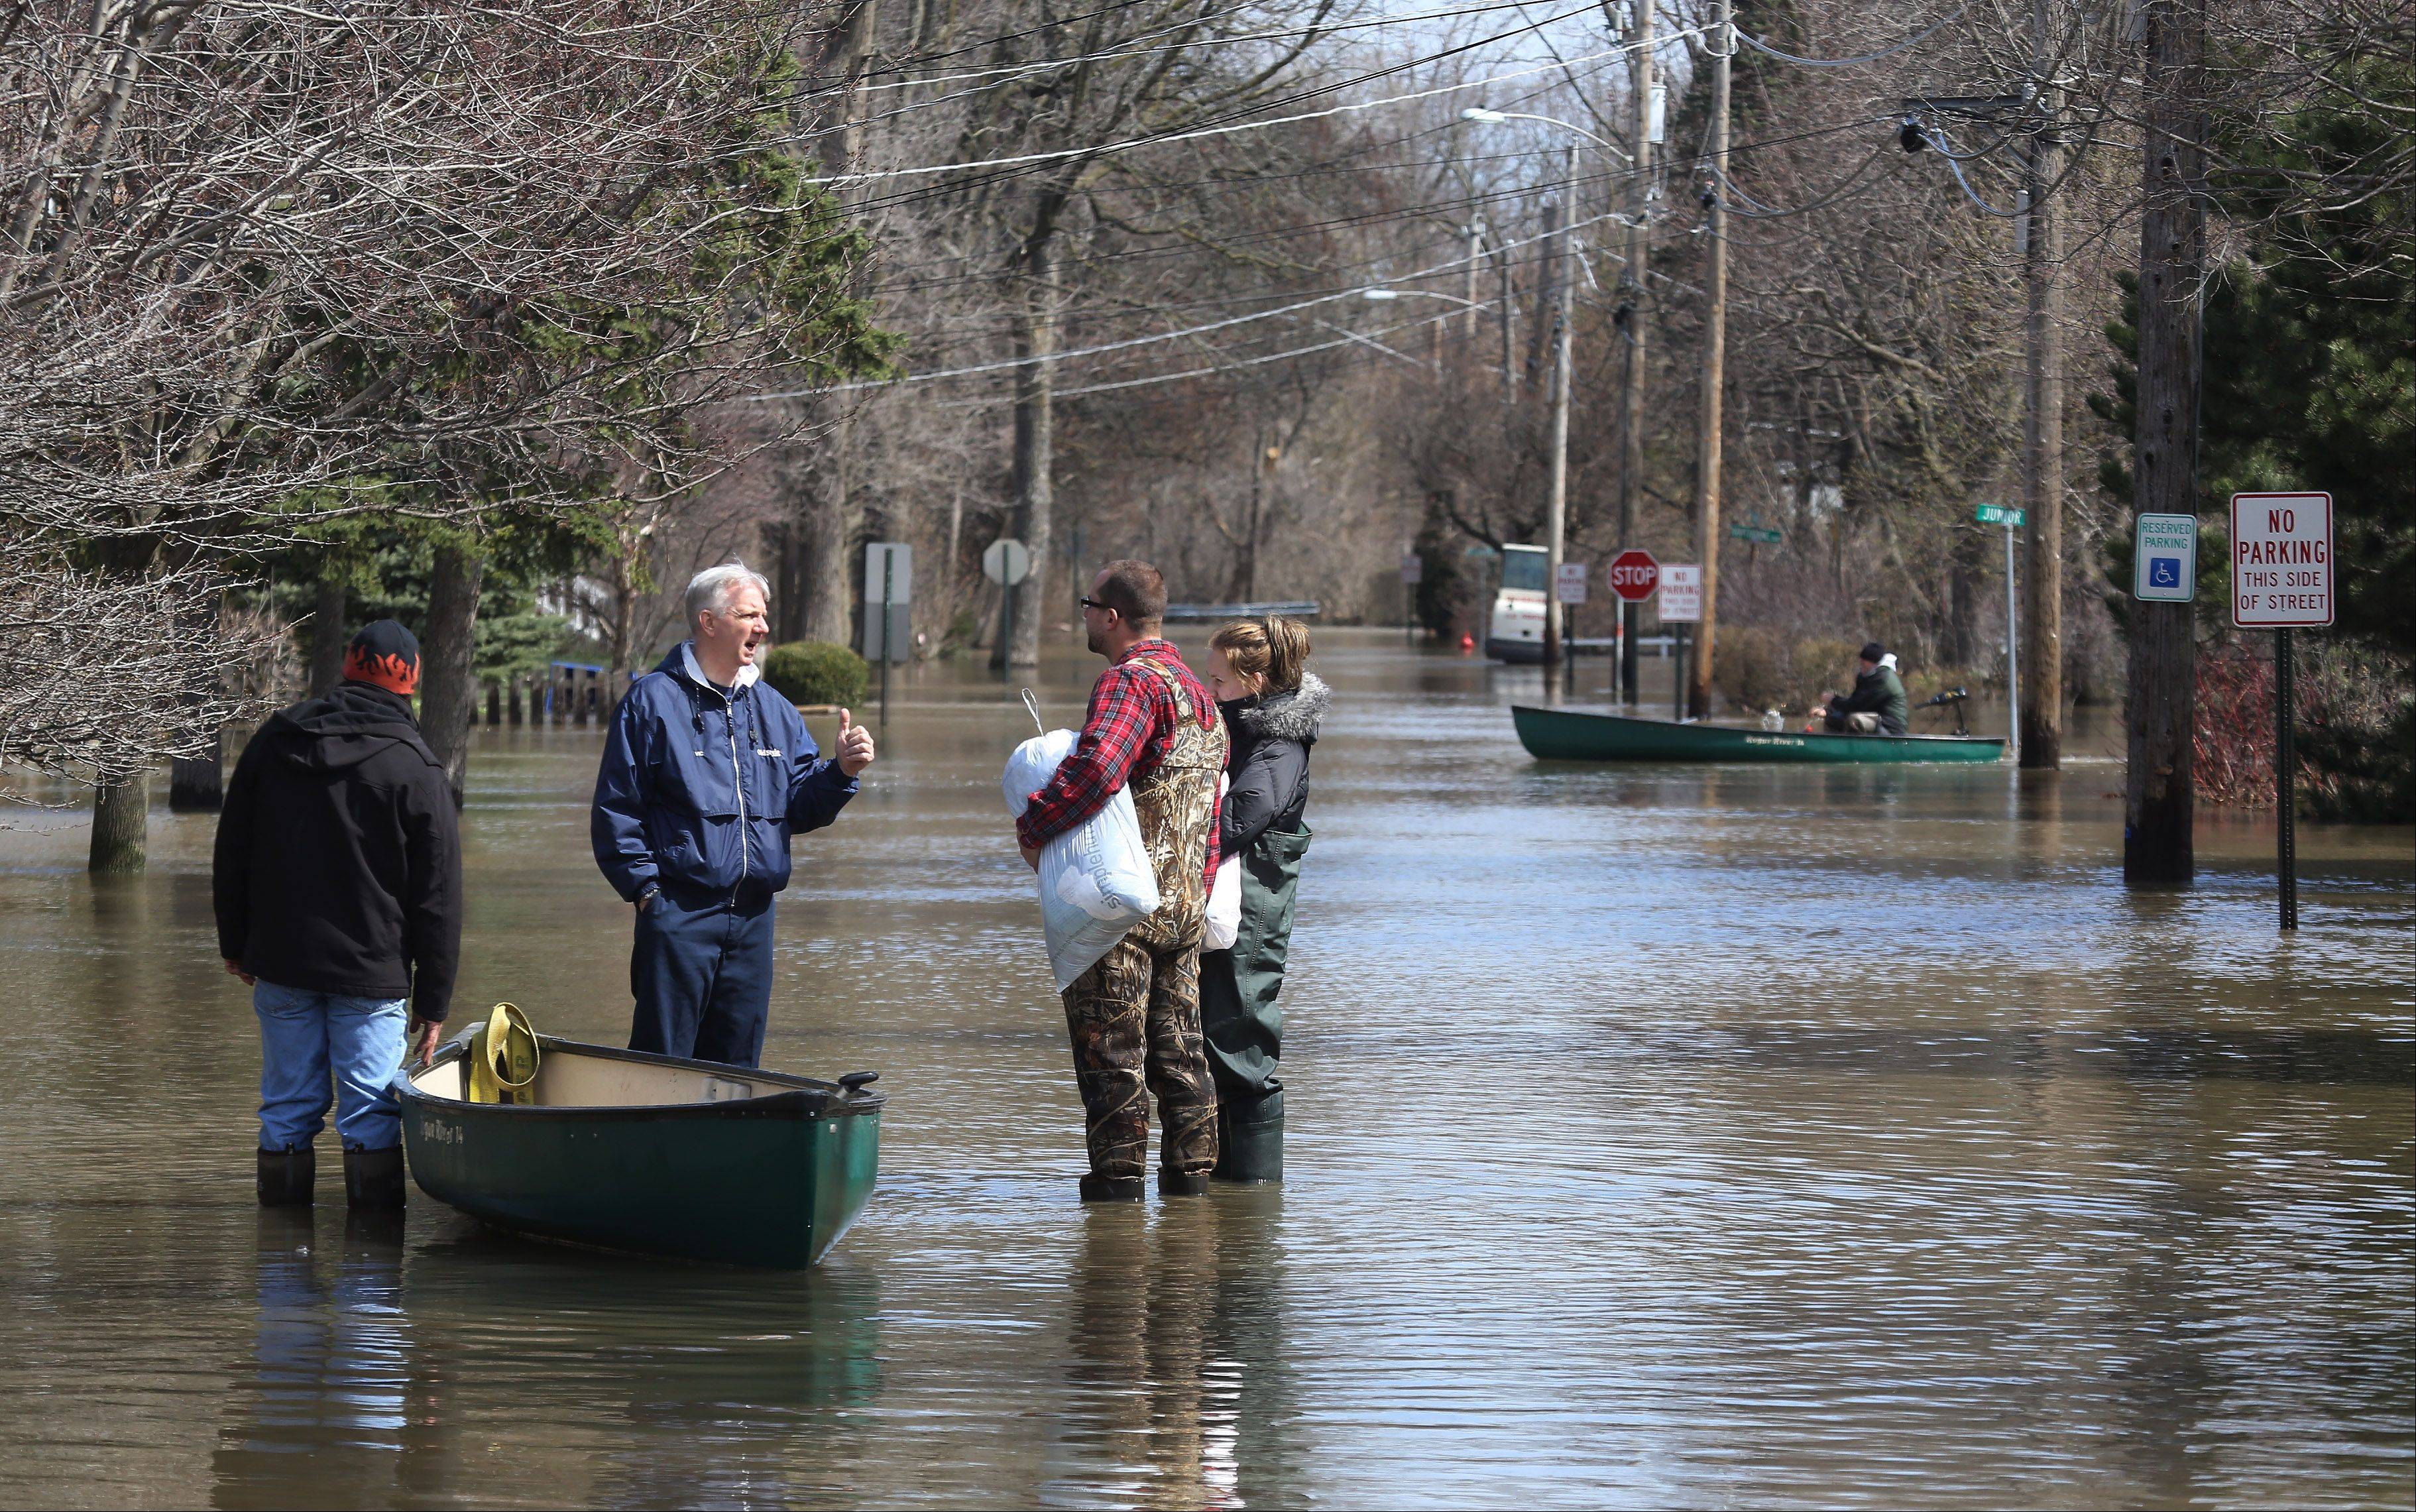 The mode of transportation around some Des Plaines neighborhoods last April 21 was by canoe. Here Vic Kamka, center, talks to neighbors about the flooding.